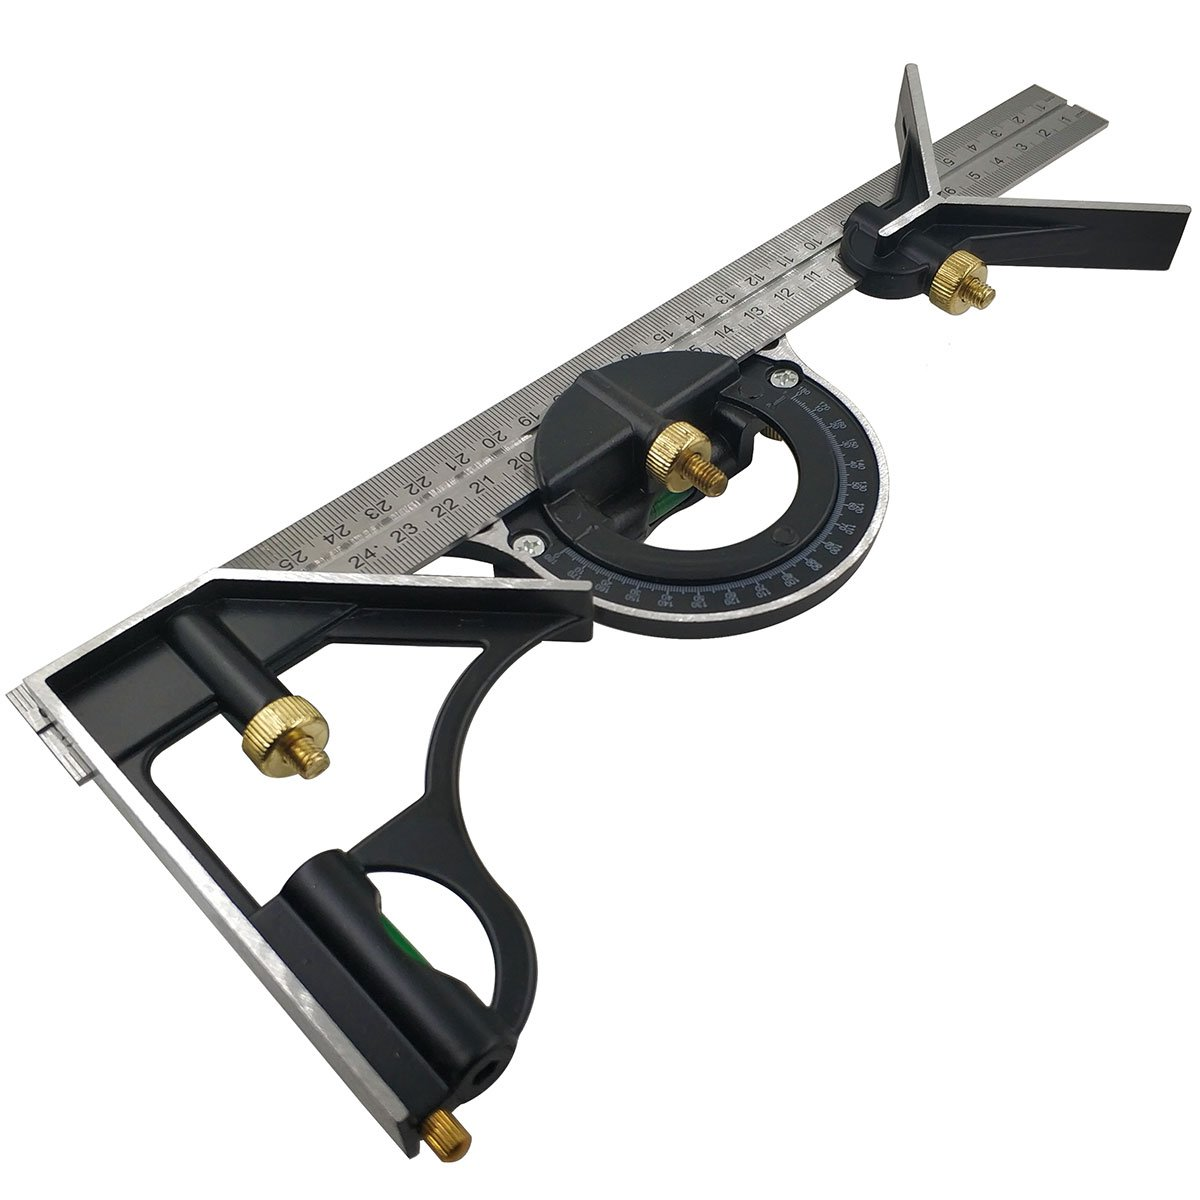 Daycount Combination Square Set 24'' Stainless Steel Ruler with Center Square Protractor Heads